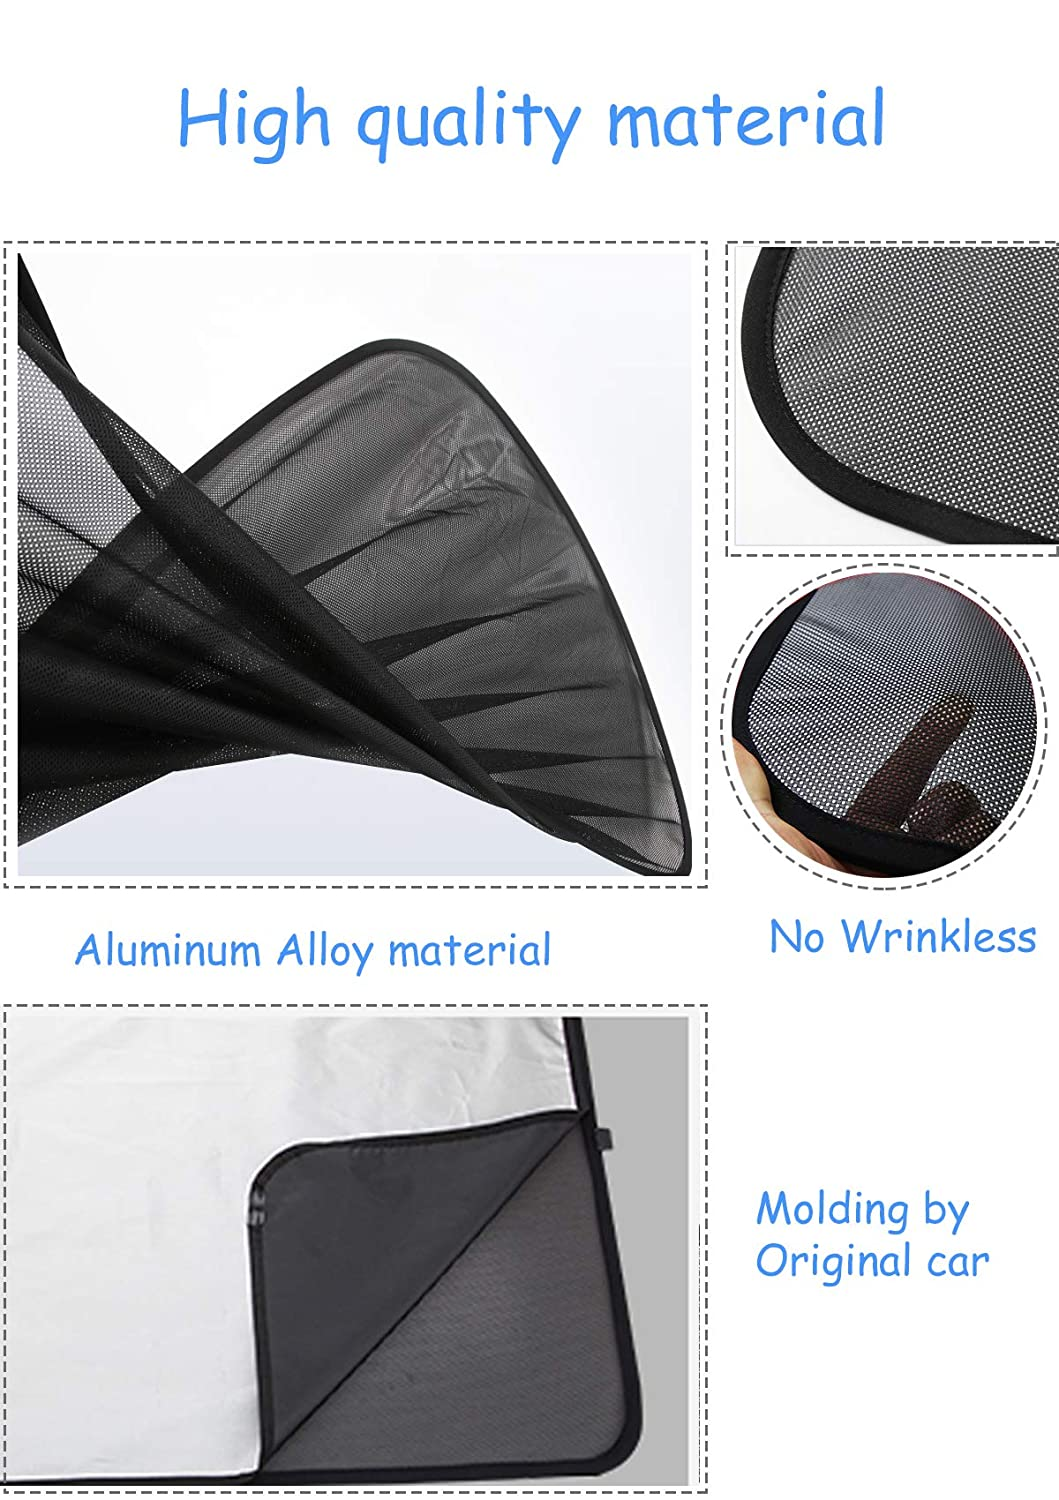 Moonlinks Tesla Model 3 The Mesh Sunshade+UV//Heat Insulation Film Compatible with 2017 2018 2019 Tesla Model 3 Glass Roof Sunshade for car Windshield(4 Pieces) Tesla Model 3 Roof Sunshade Sunroof